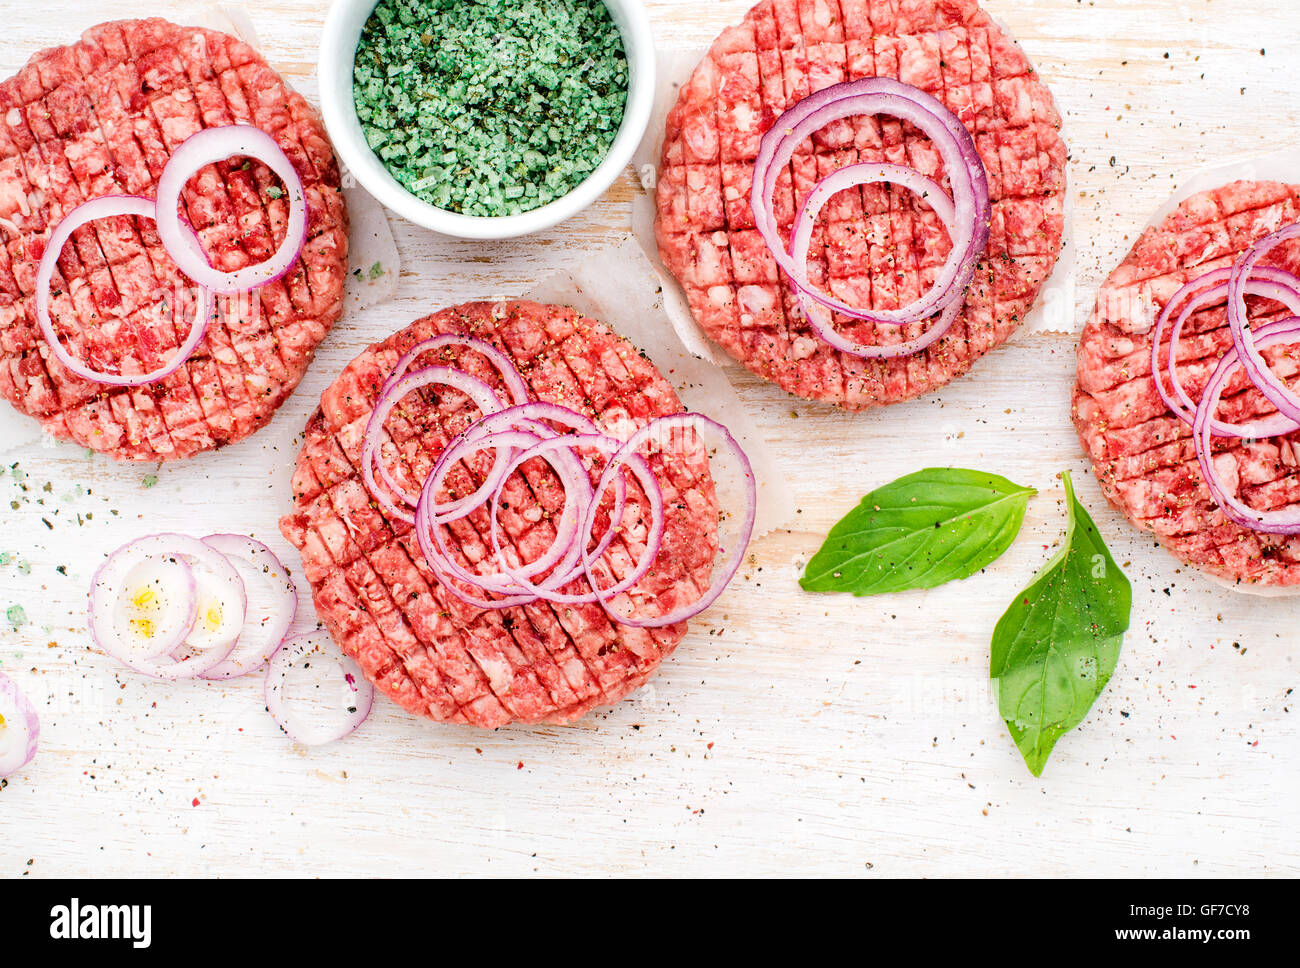 Raw ground beef meat cutlet for cooking burgers with onion rings and spices on white wooden background - Stock Image